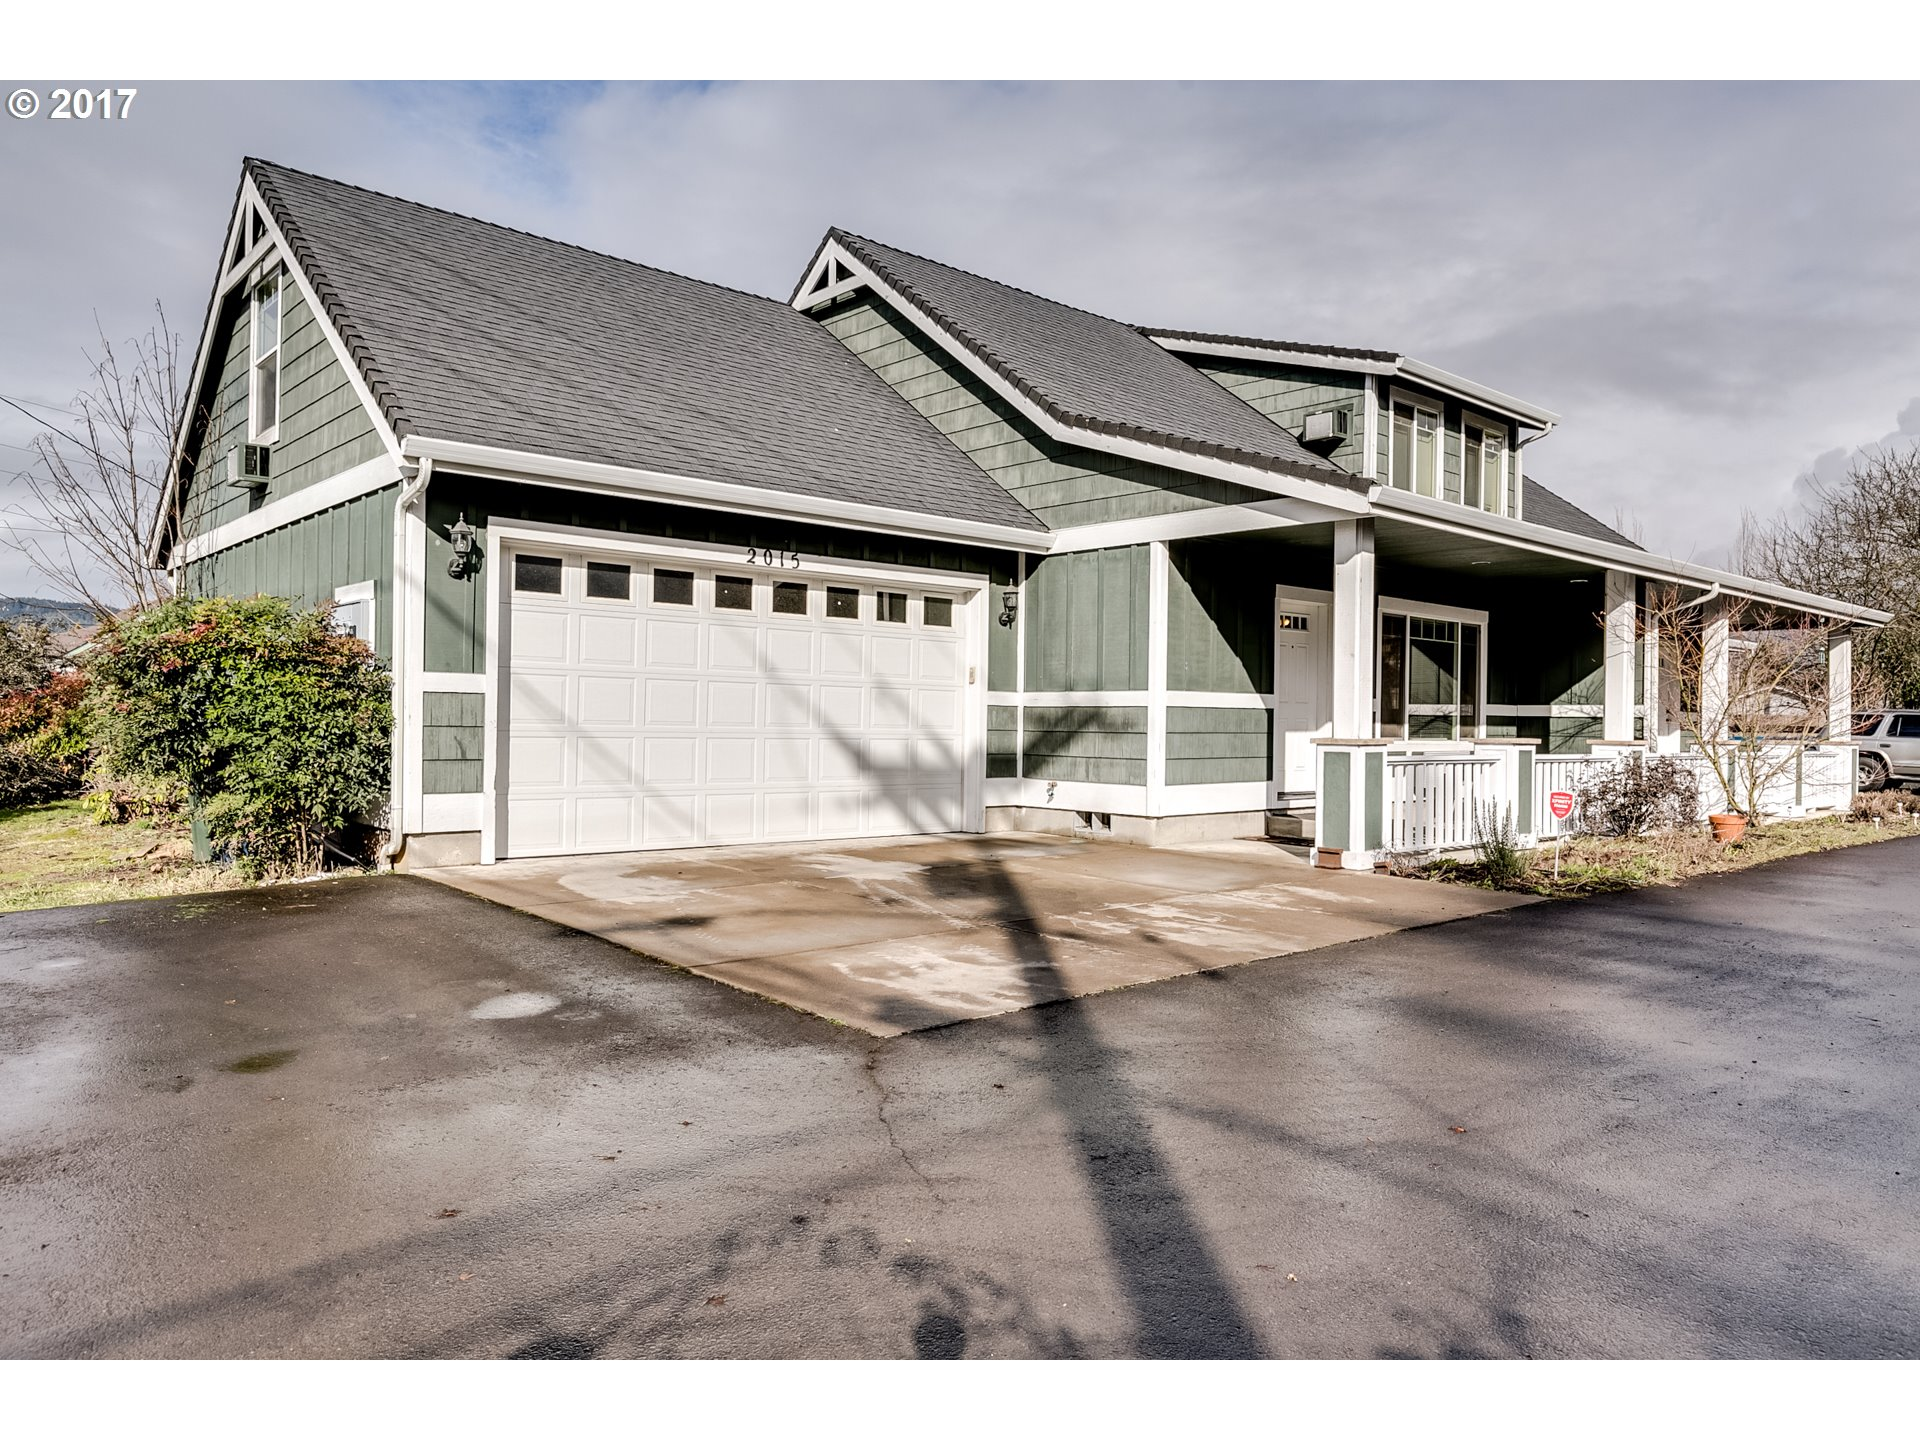 2015 2ND ST, Springfield, OR 97477